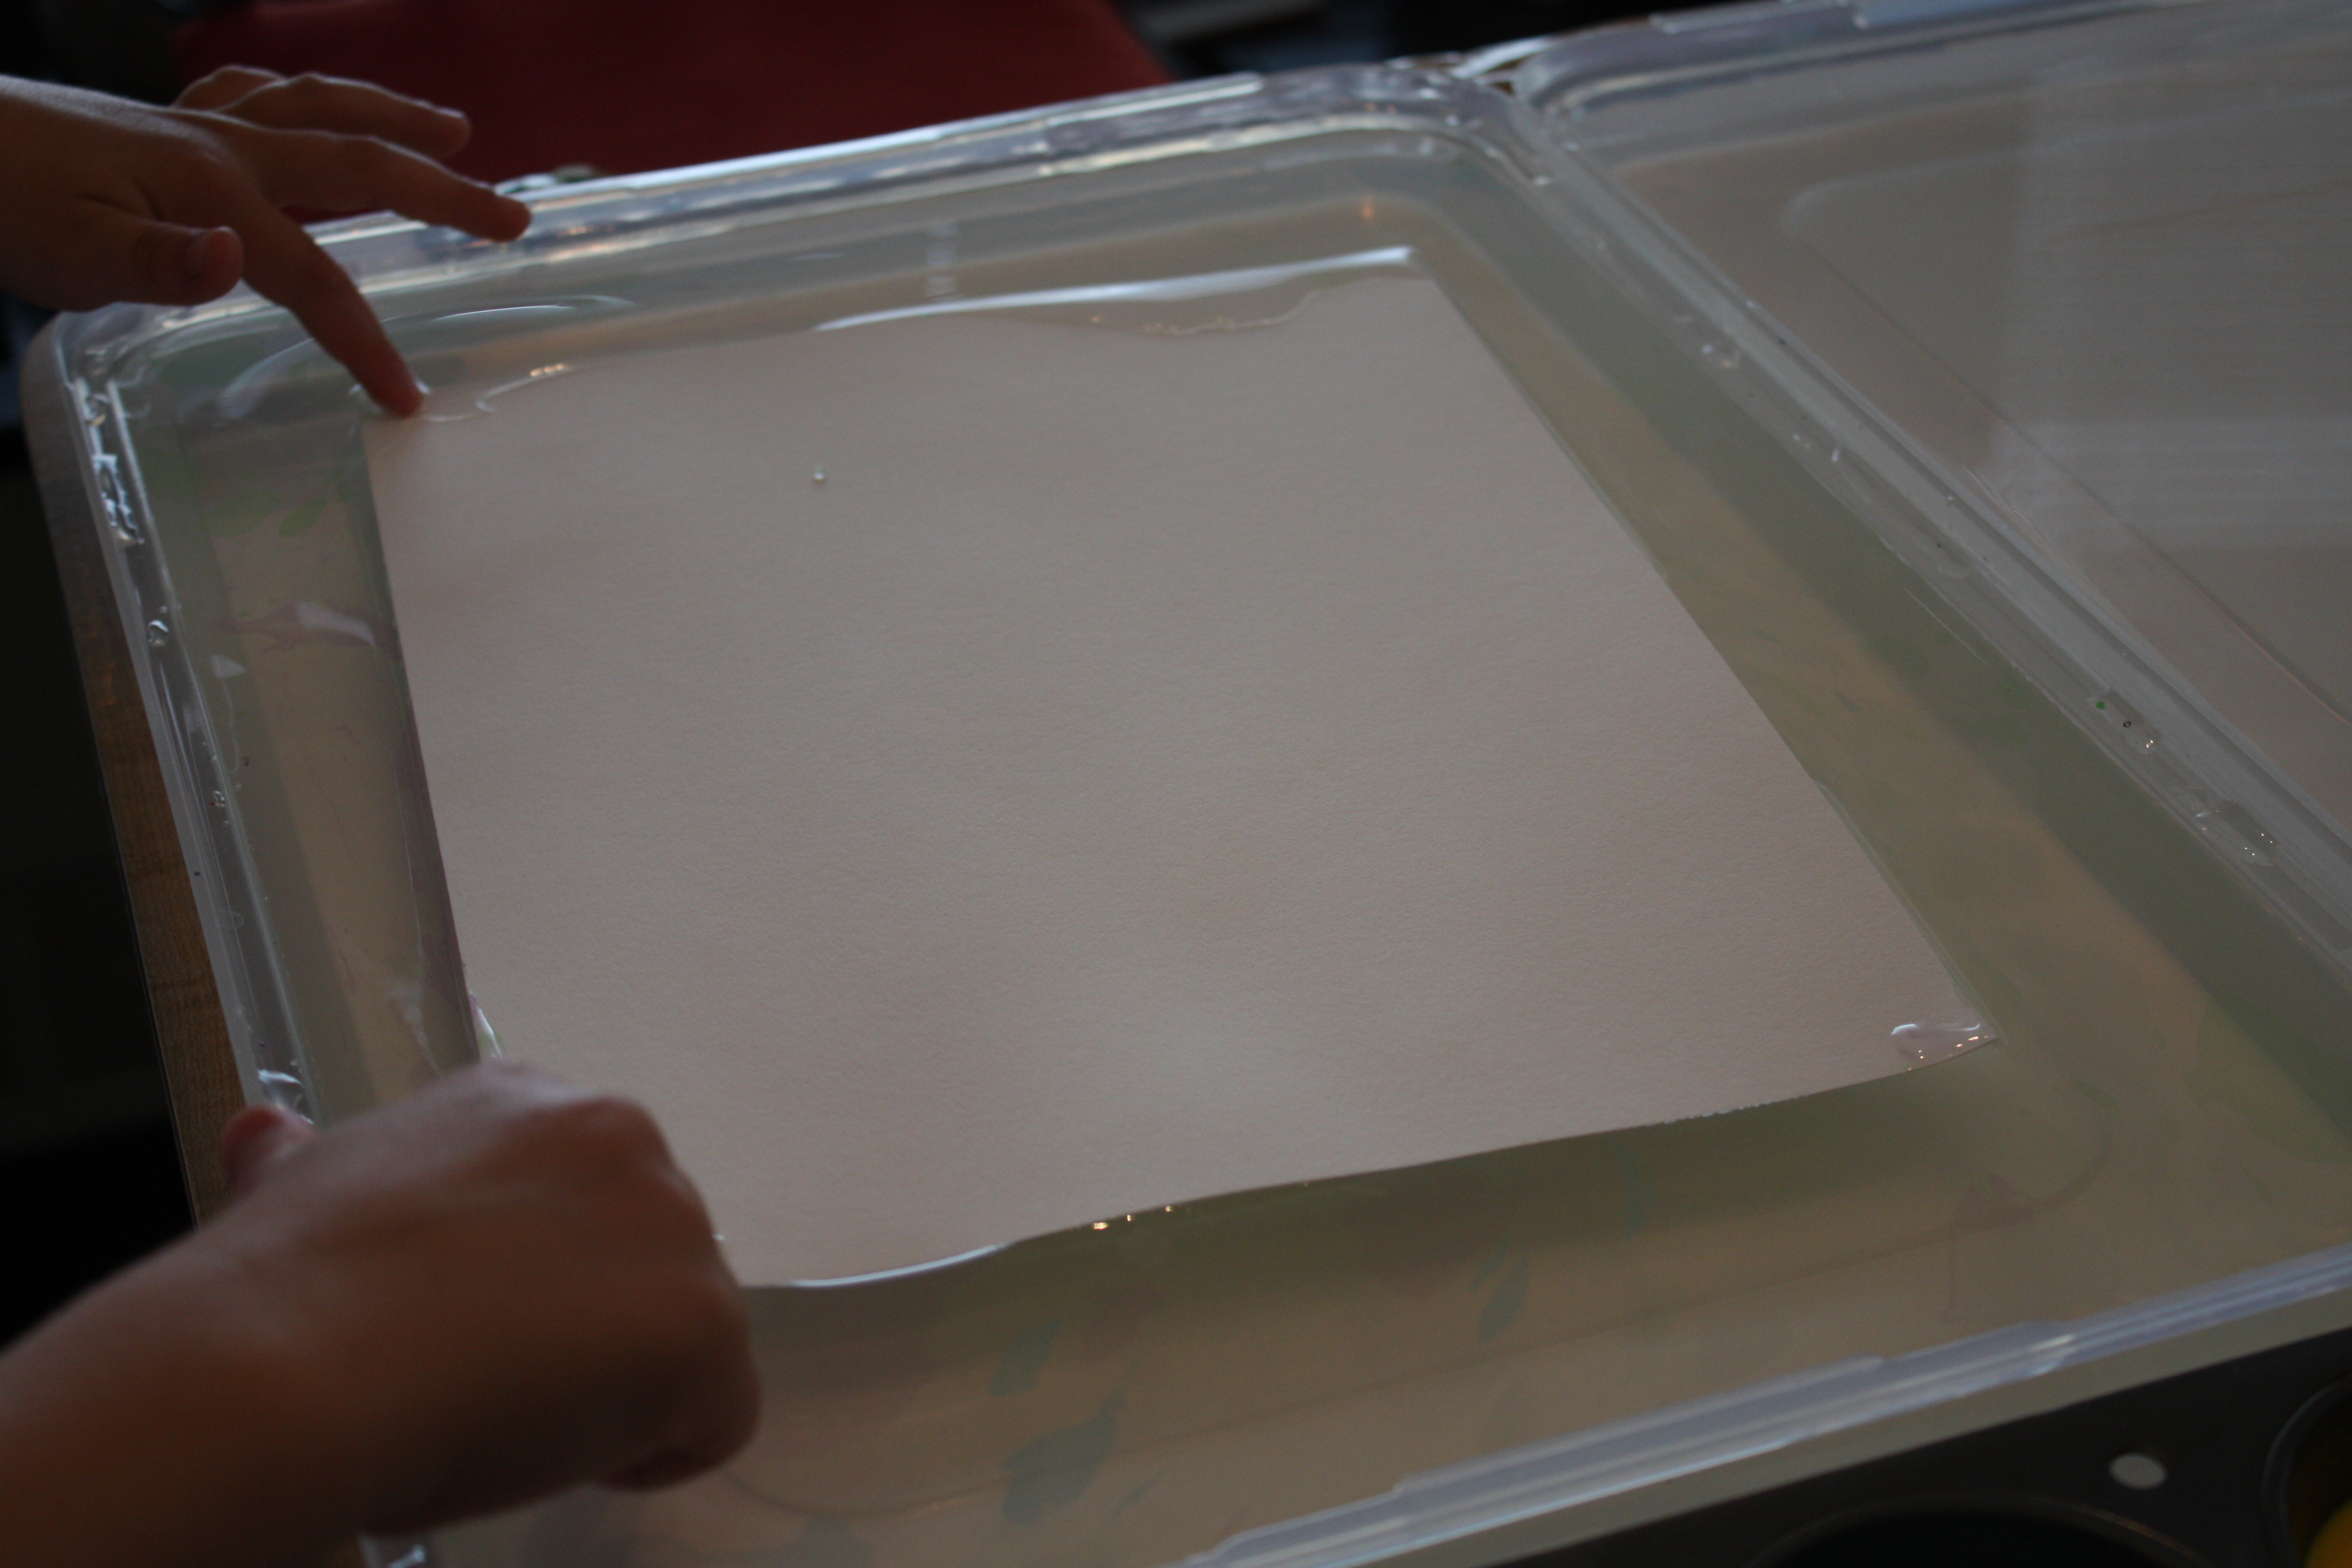 Put the paper alum side down on top of the size